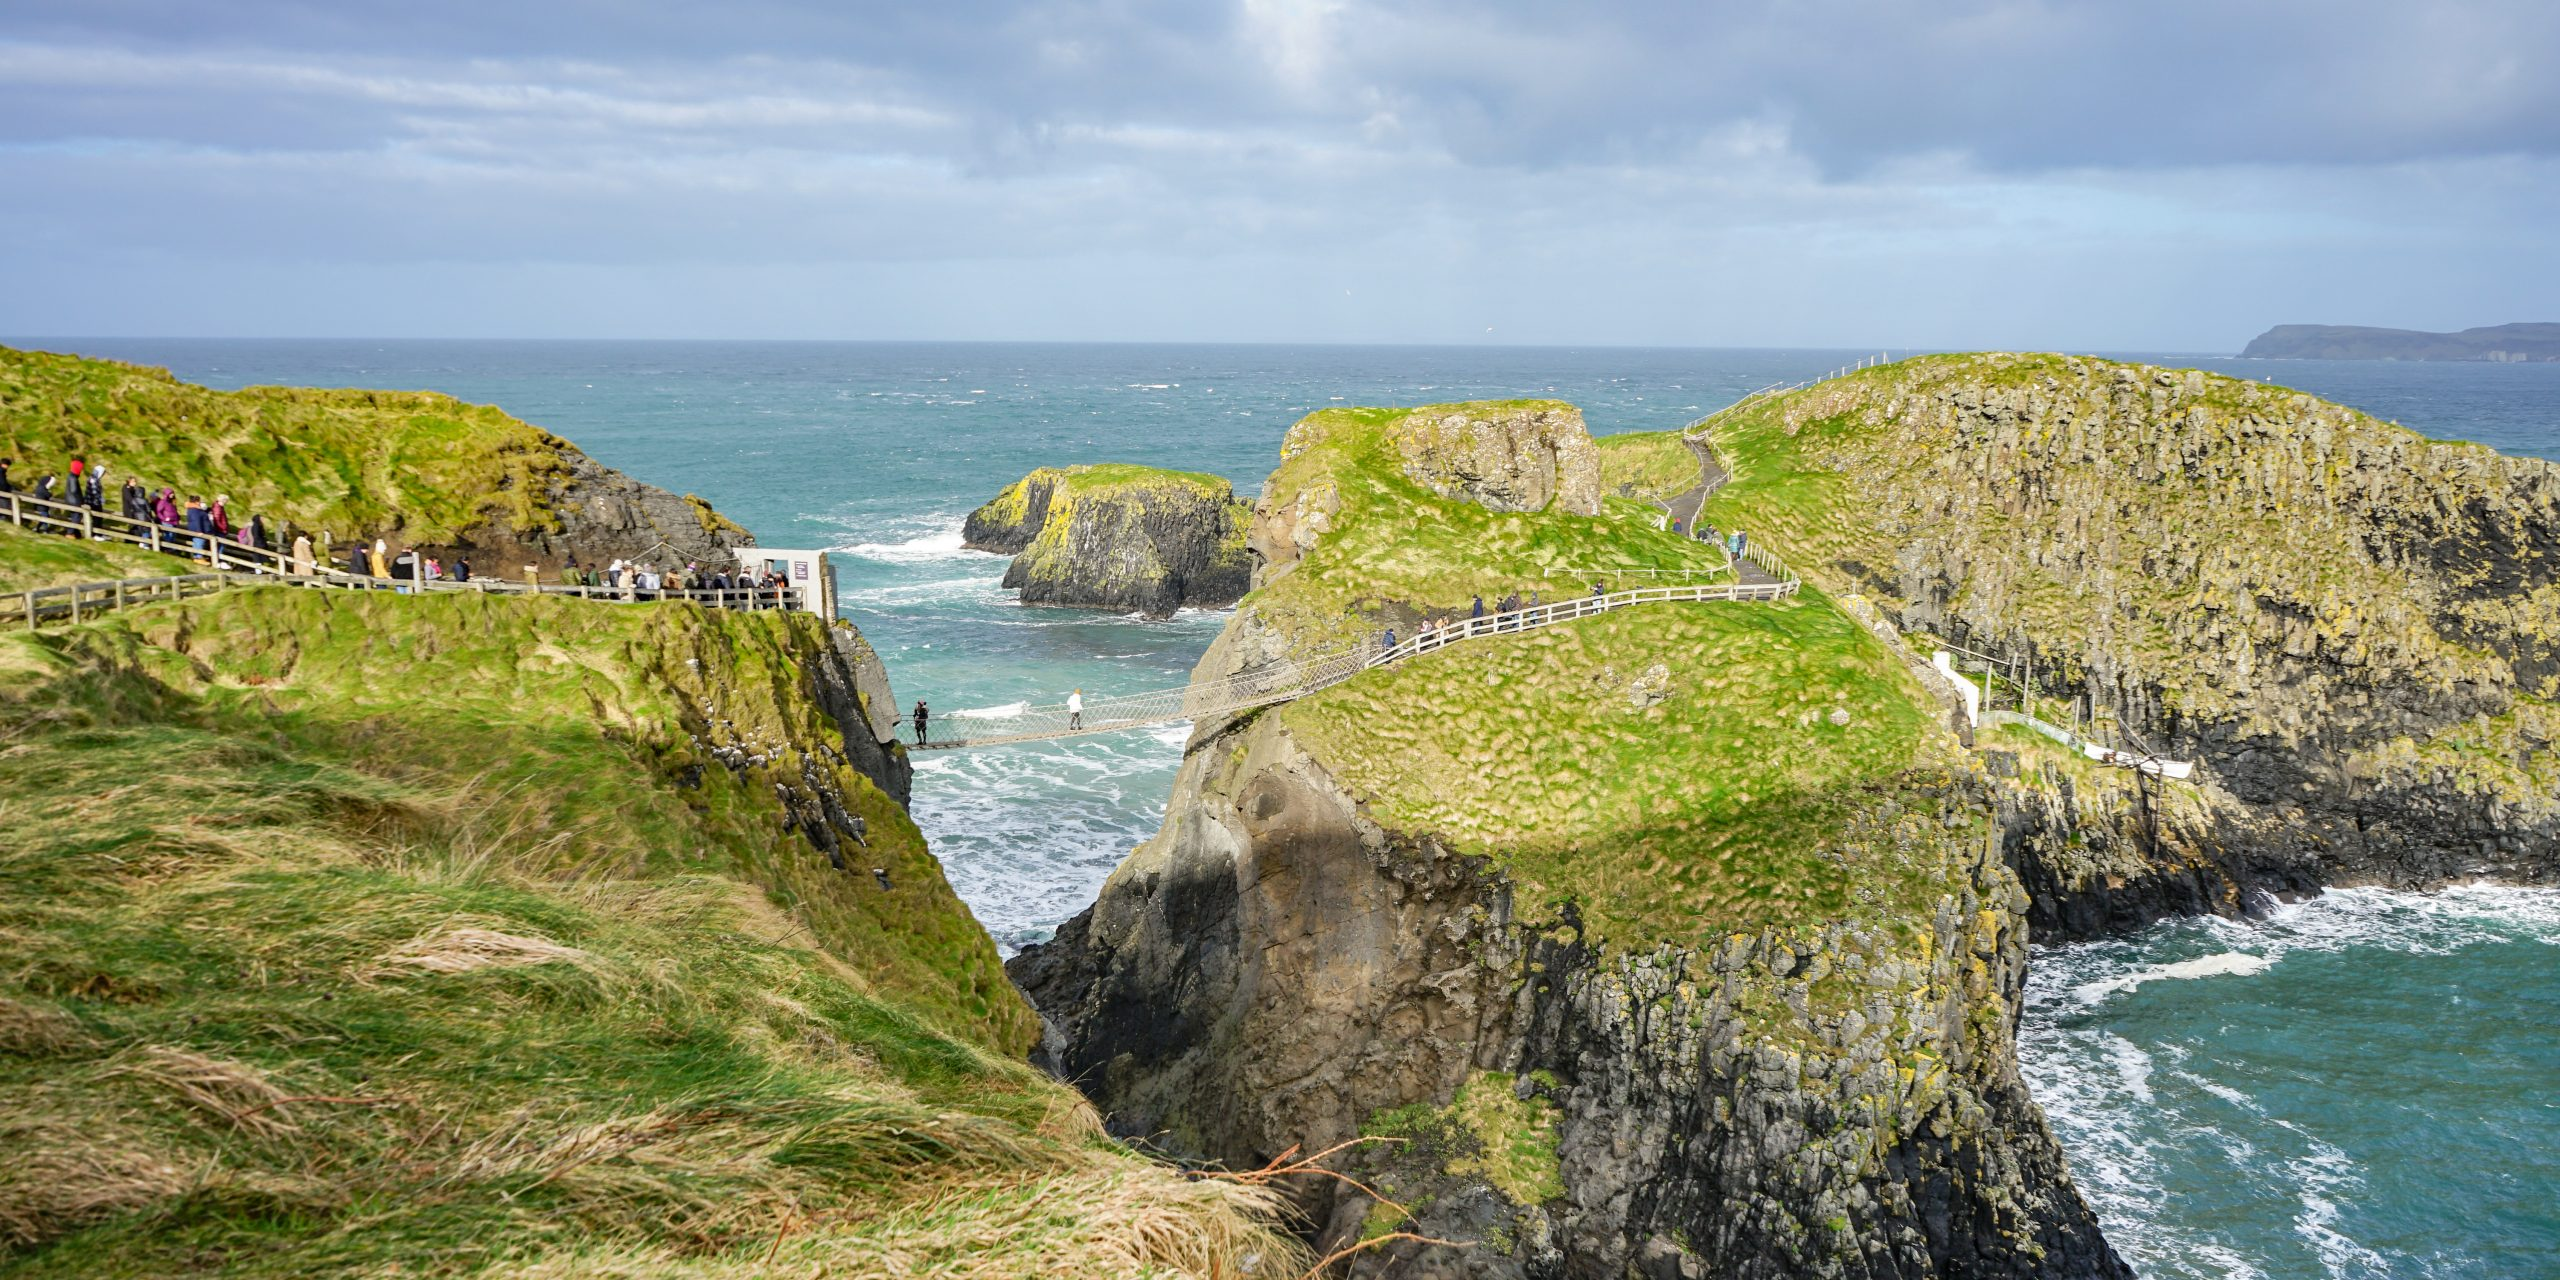 View of the Carrick-a-Rede Bridge in Northern Ireland